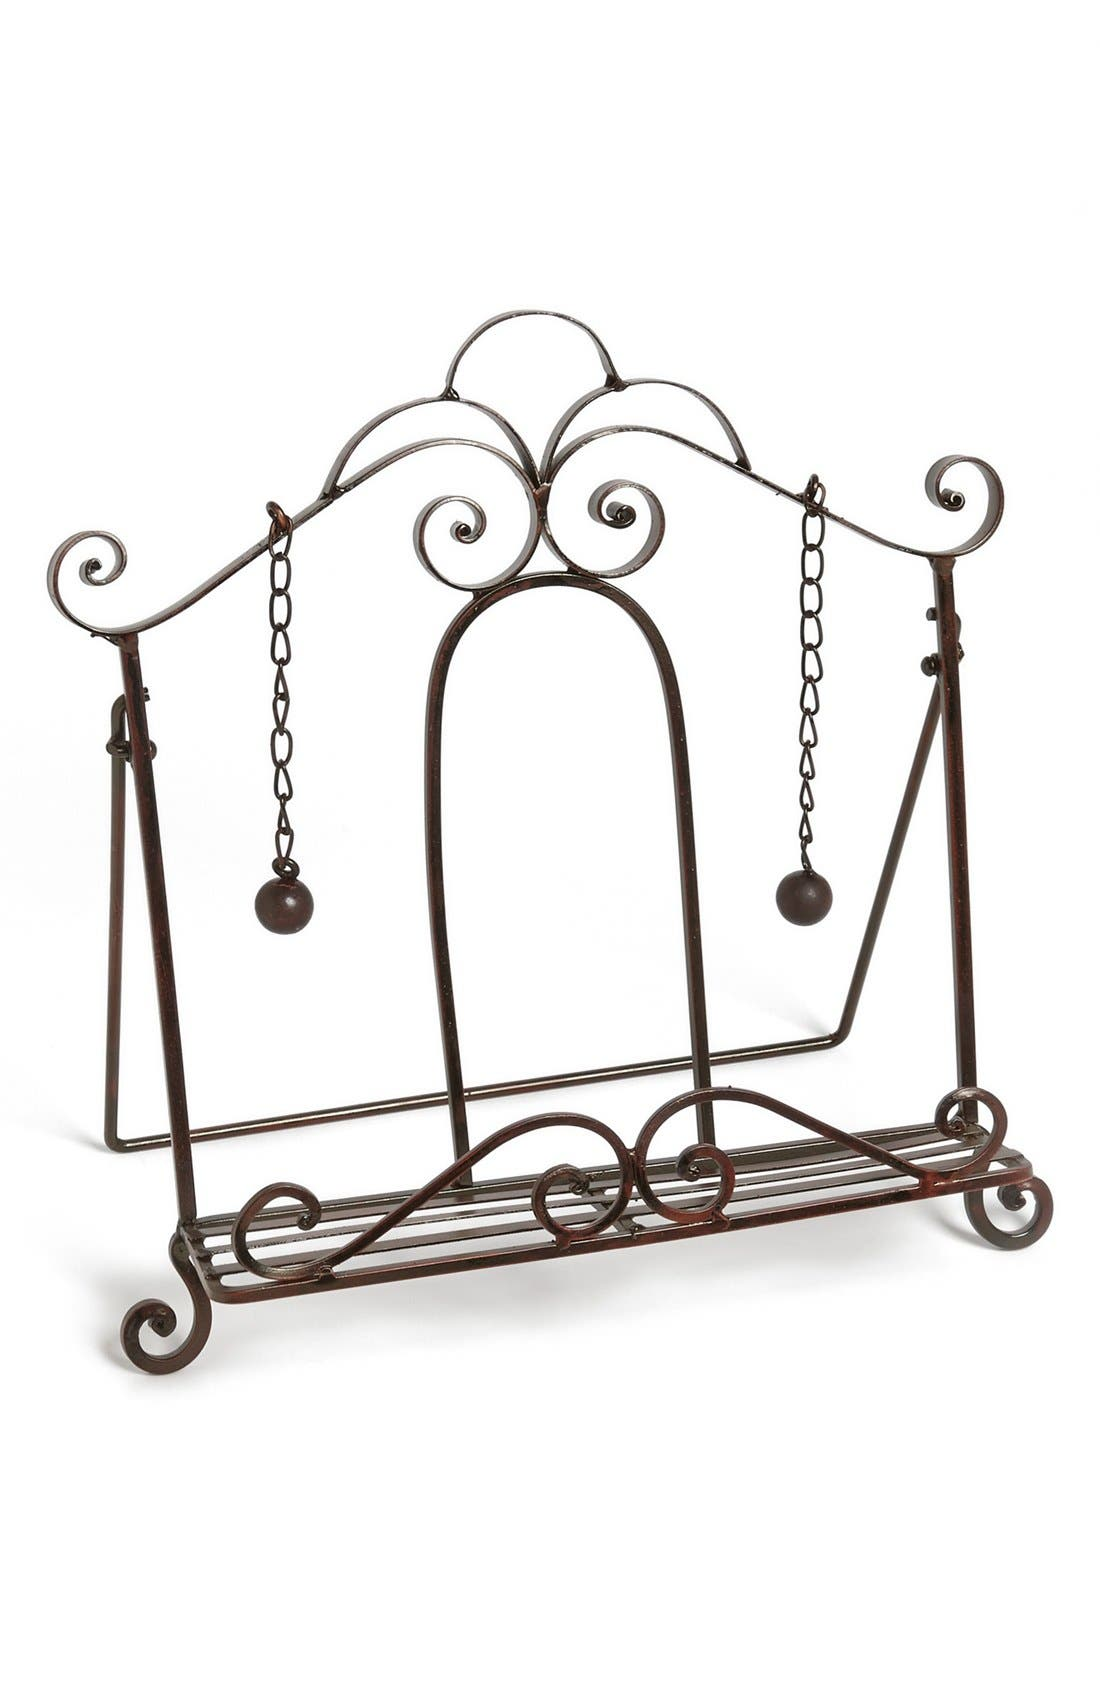 Alternate Image 1 Selected - Iron Book Stand